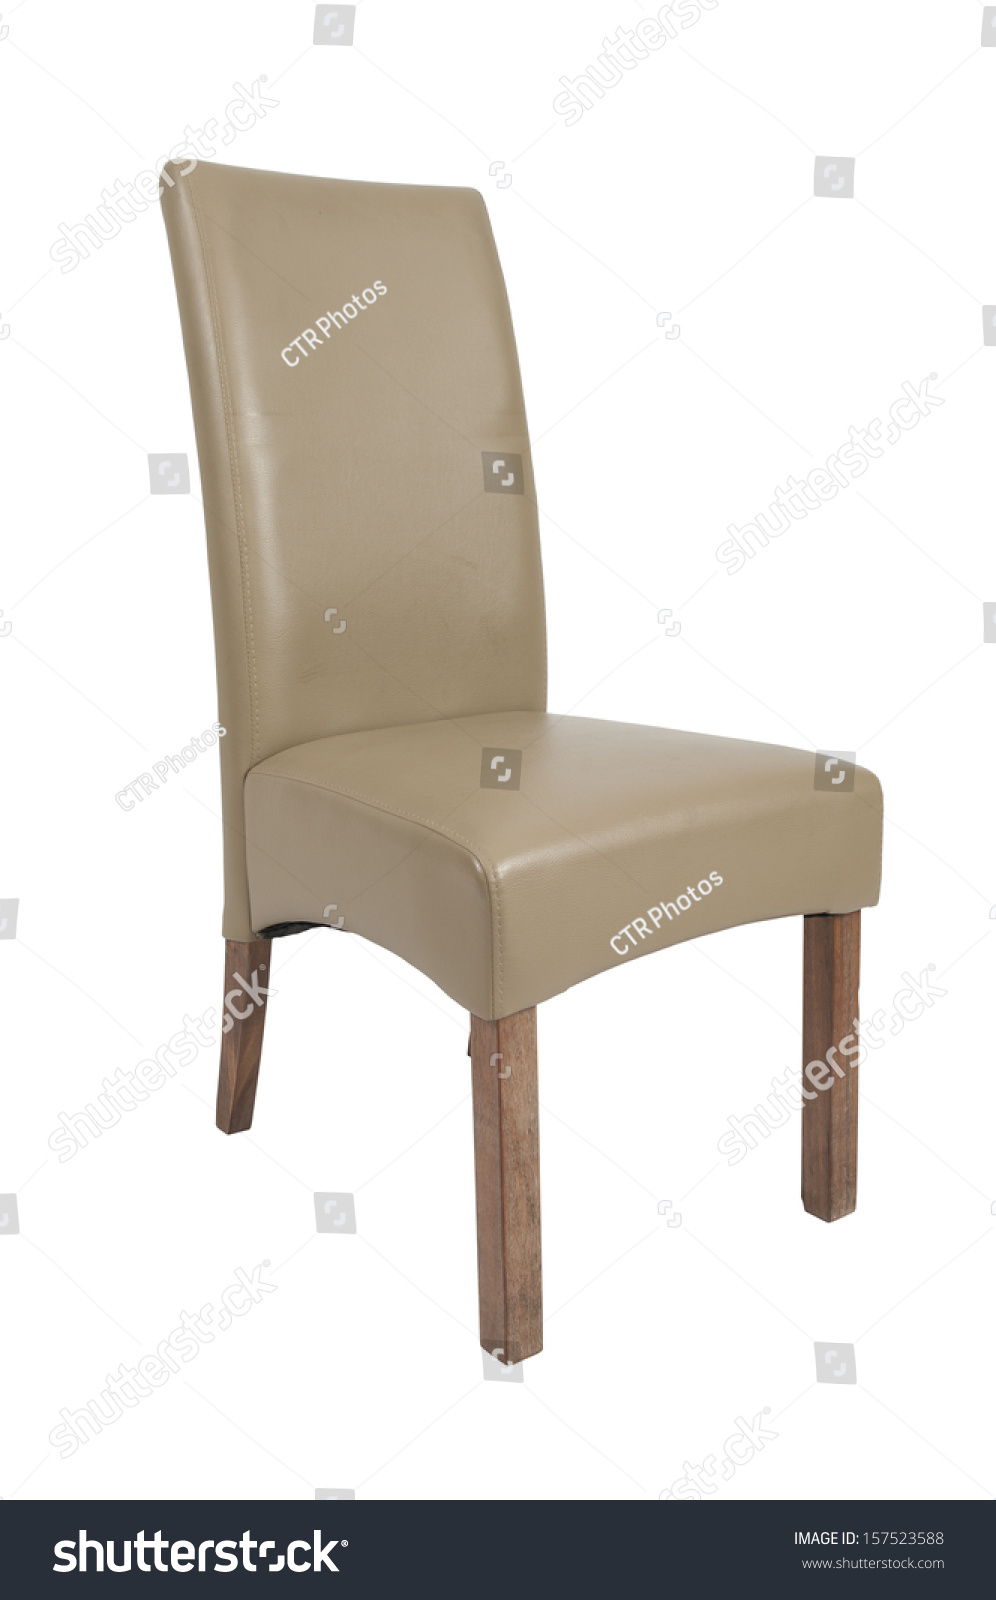 single beige dining room chair on a white background stock photo